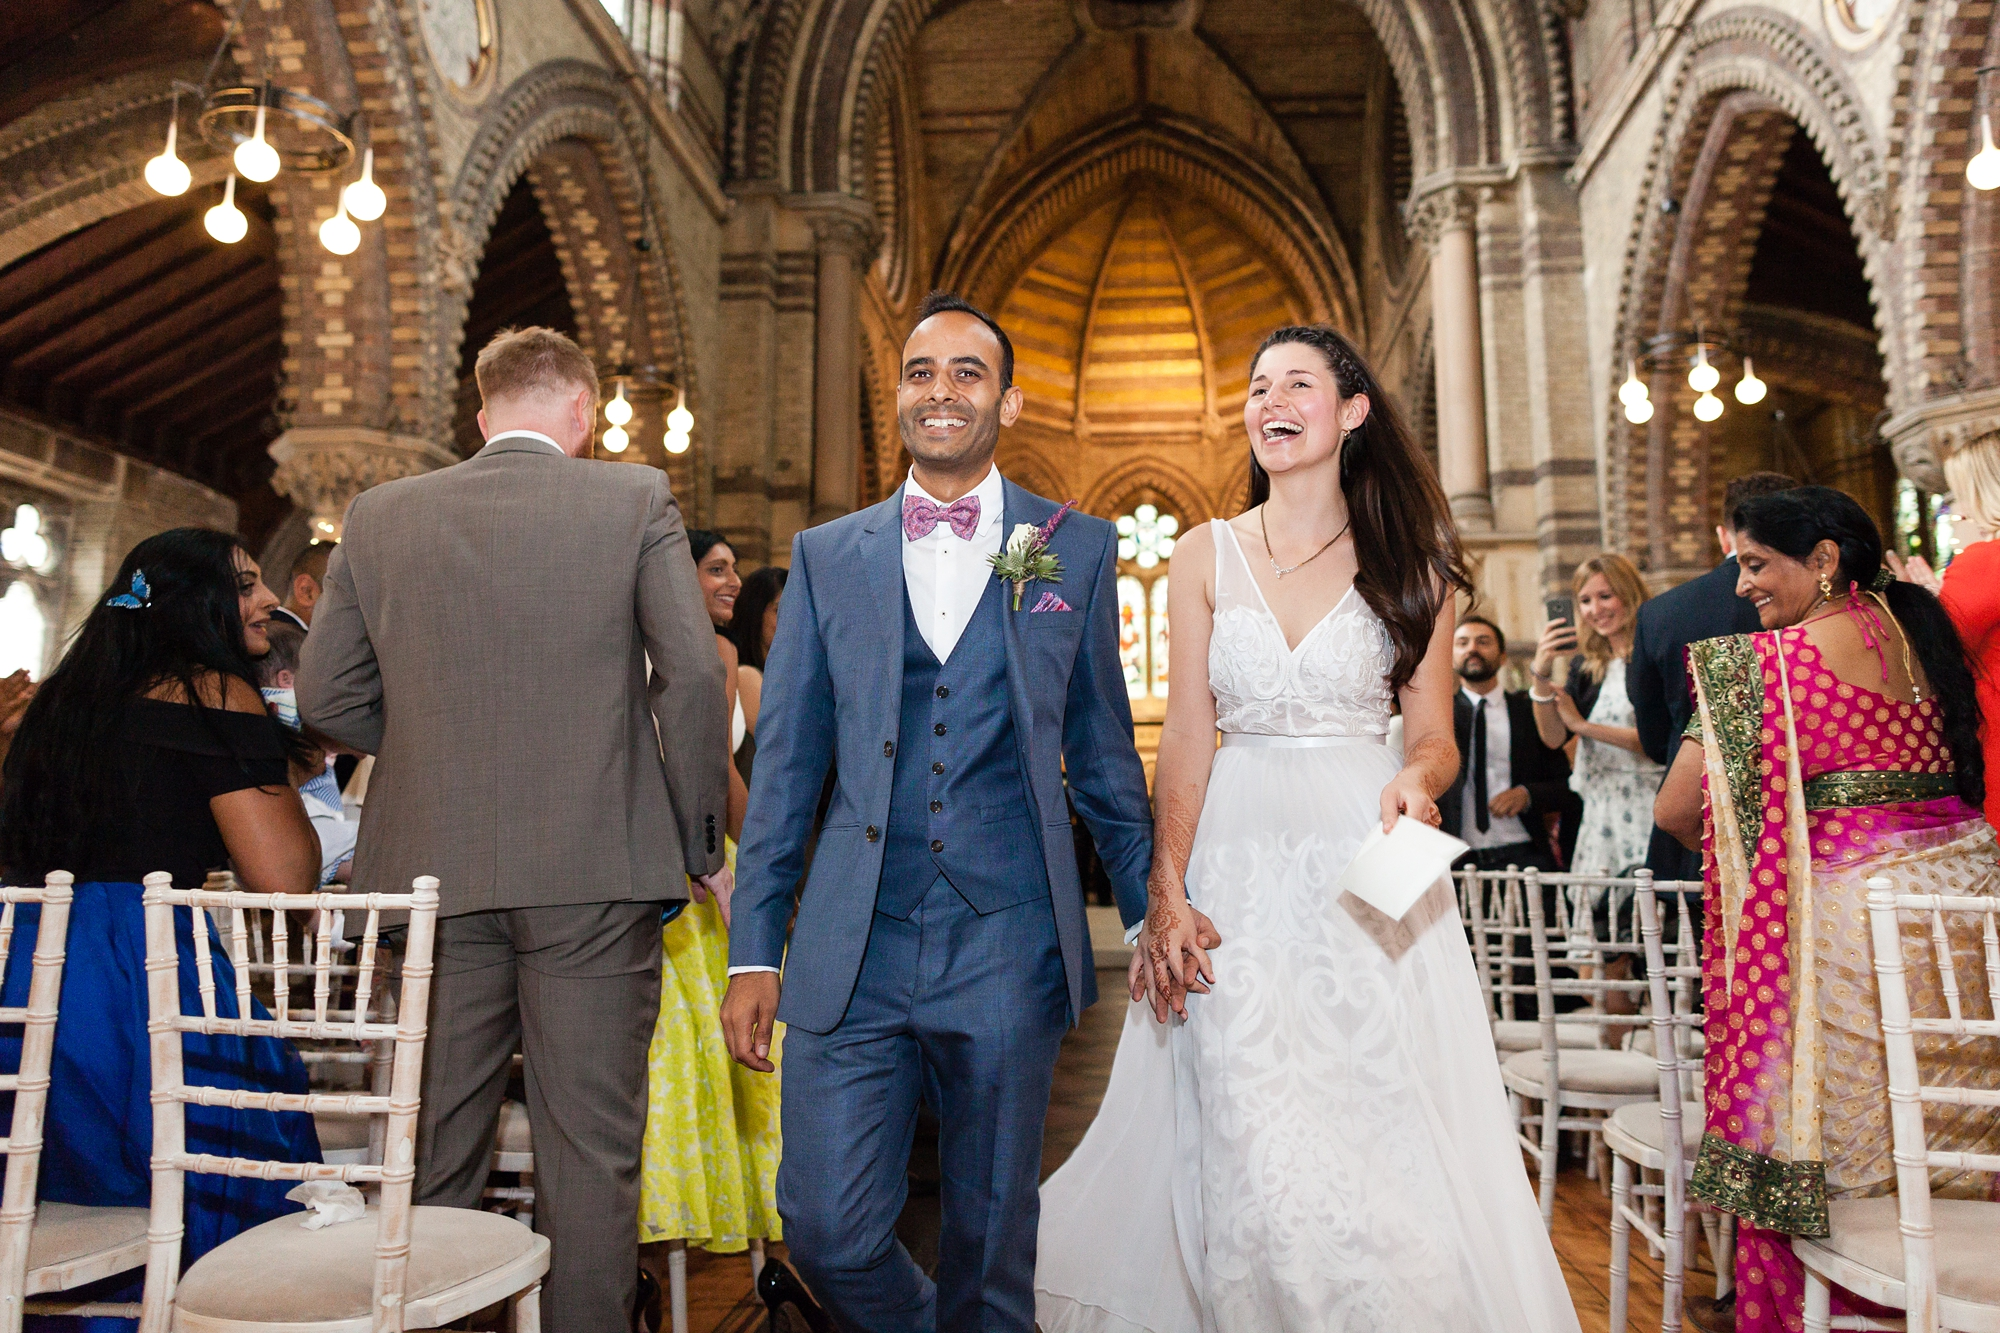 St. Stephens Hampstead Wedding bride and groom walk up aisle smiling and laughing